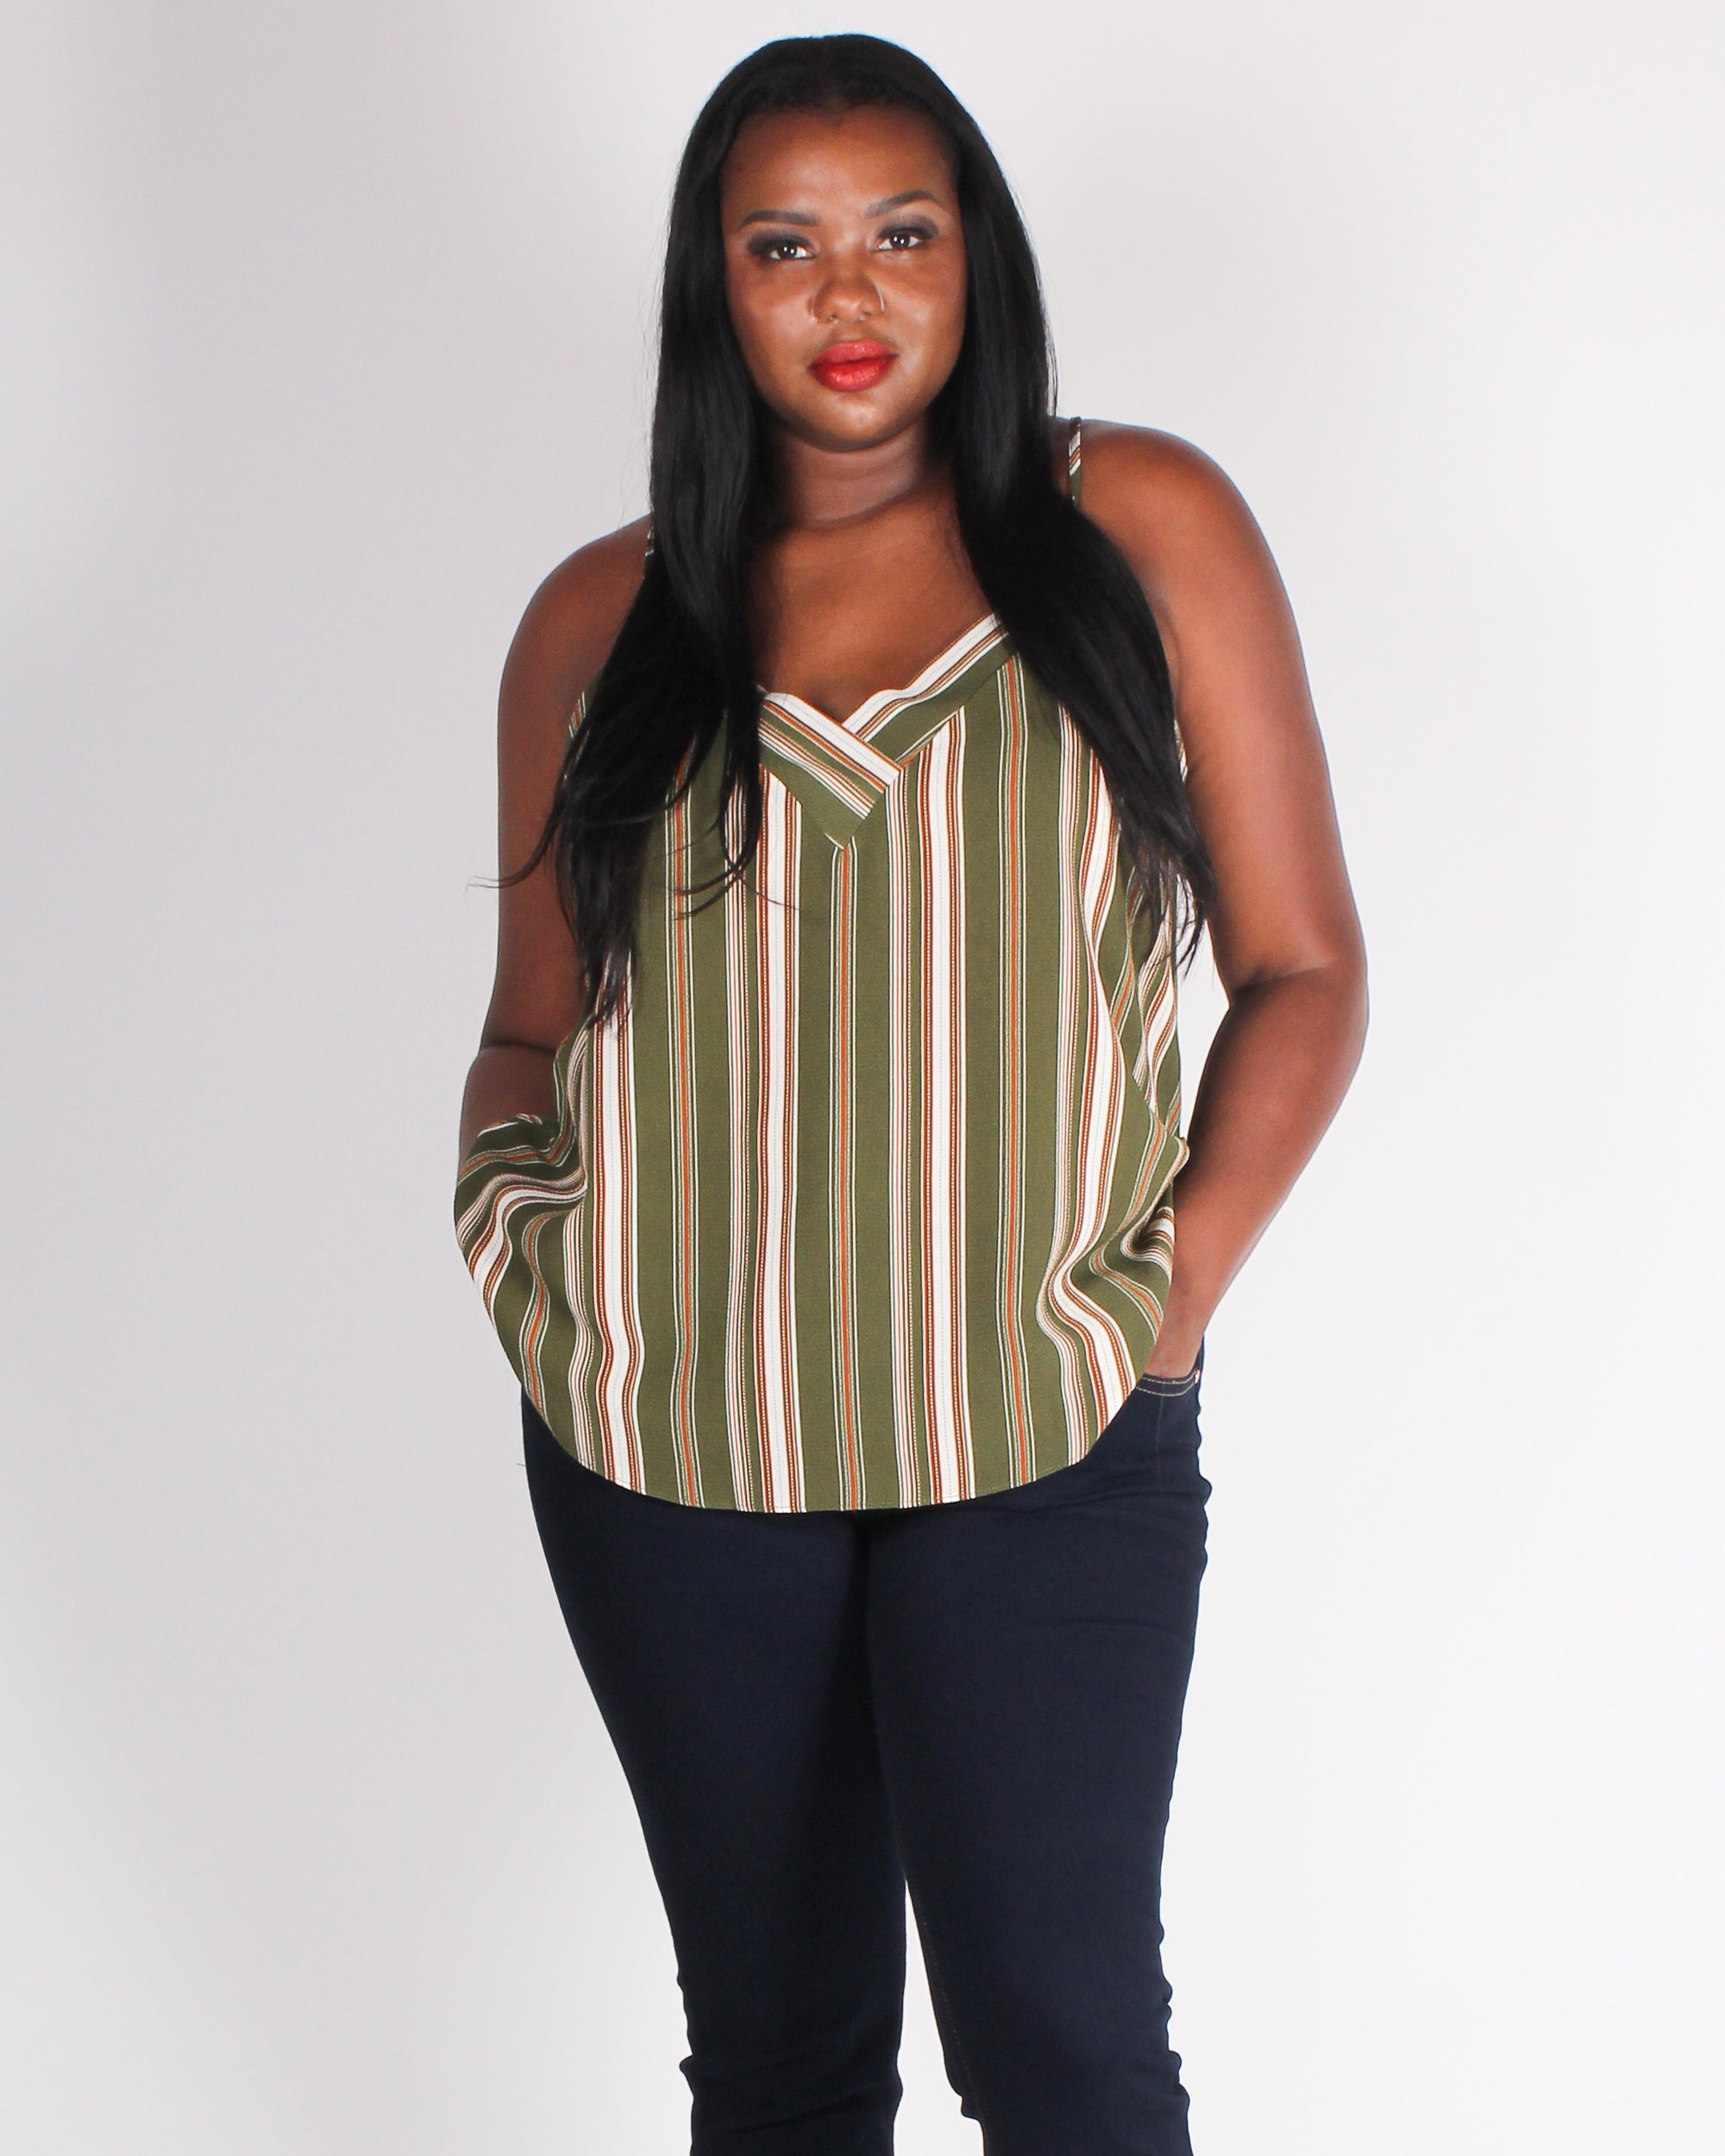 Fashion Q Shop Q Strength Grows in a Striped Plus Blouse (Olive) PTB5232